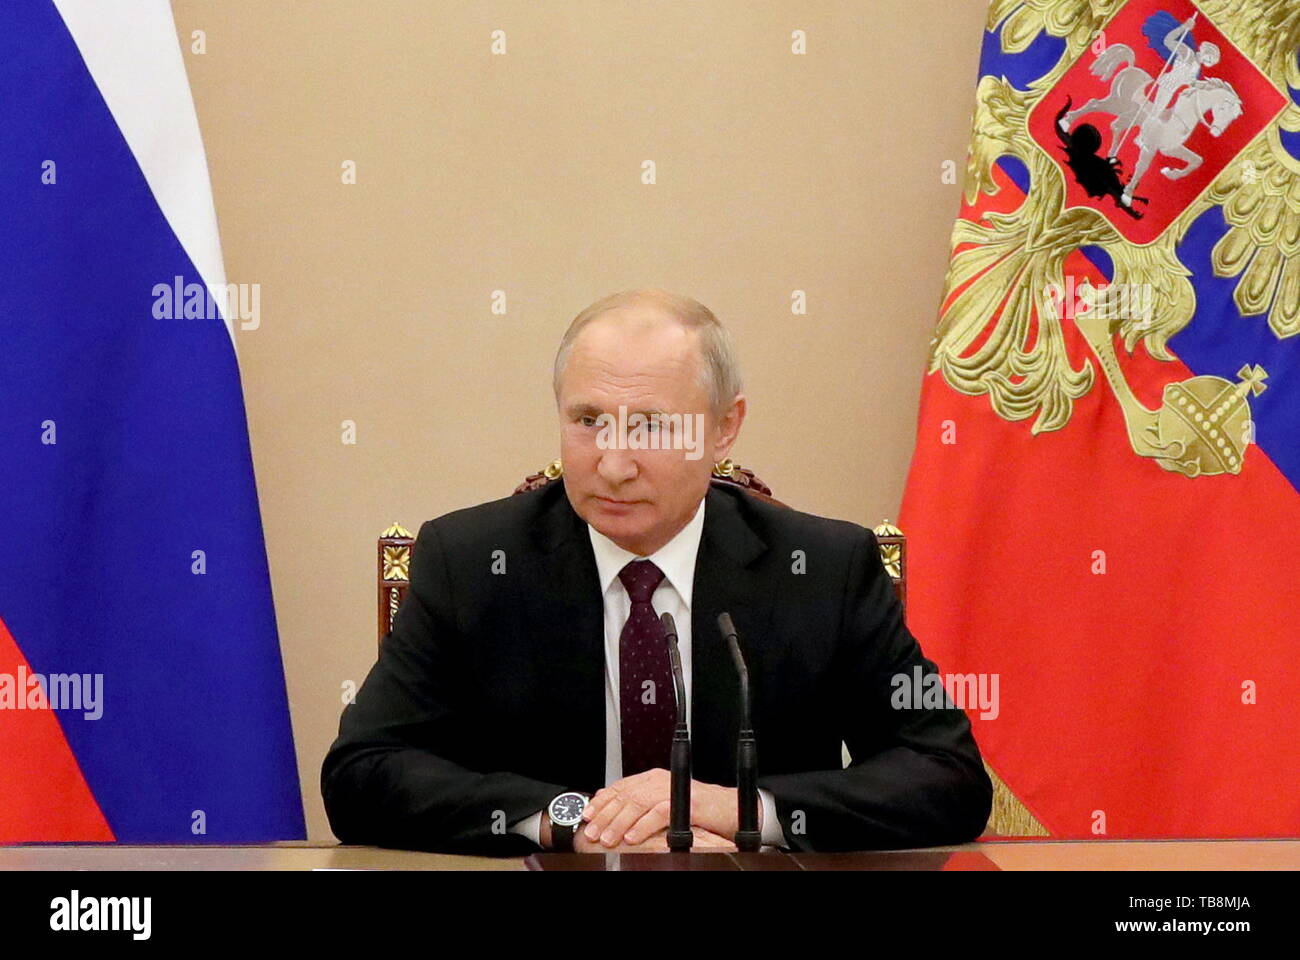 Moscow, Russia. 31st May, 2019. MOSCOW, RUSSIA - MAY 31, 2019: Russia's President Vladimir Putin holds a meeting with permanent members of the Security Council at the Moscow Kremlin. Mikhail Klimentyev/Russian Presidential Press and Information Office/TASS Credit: ITAR-TASS News Agency/Alamy Live News - Stock Image